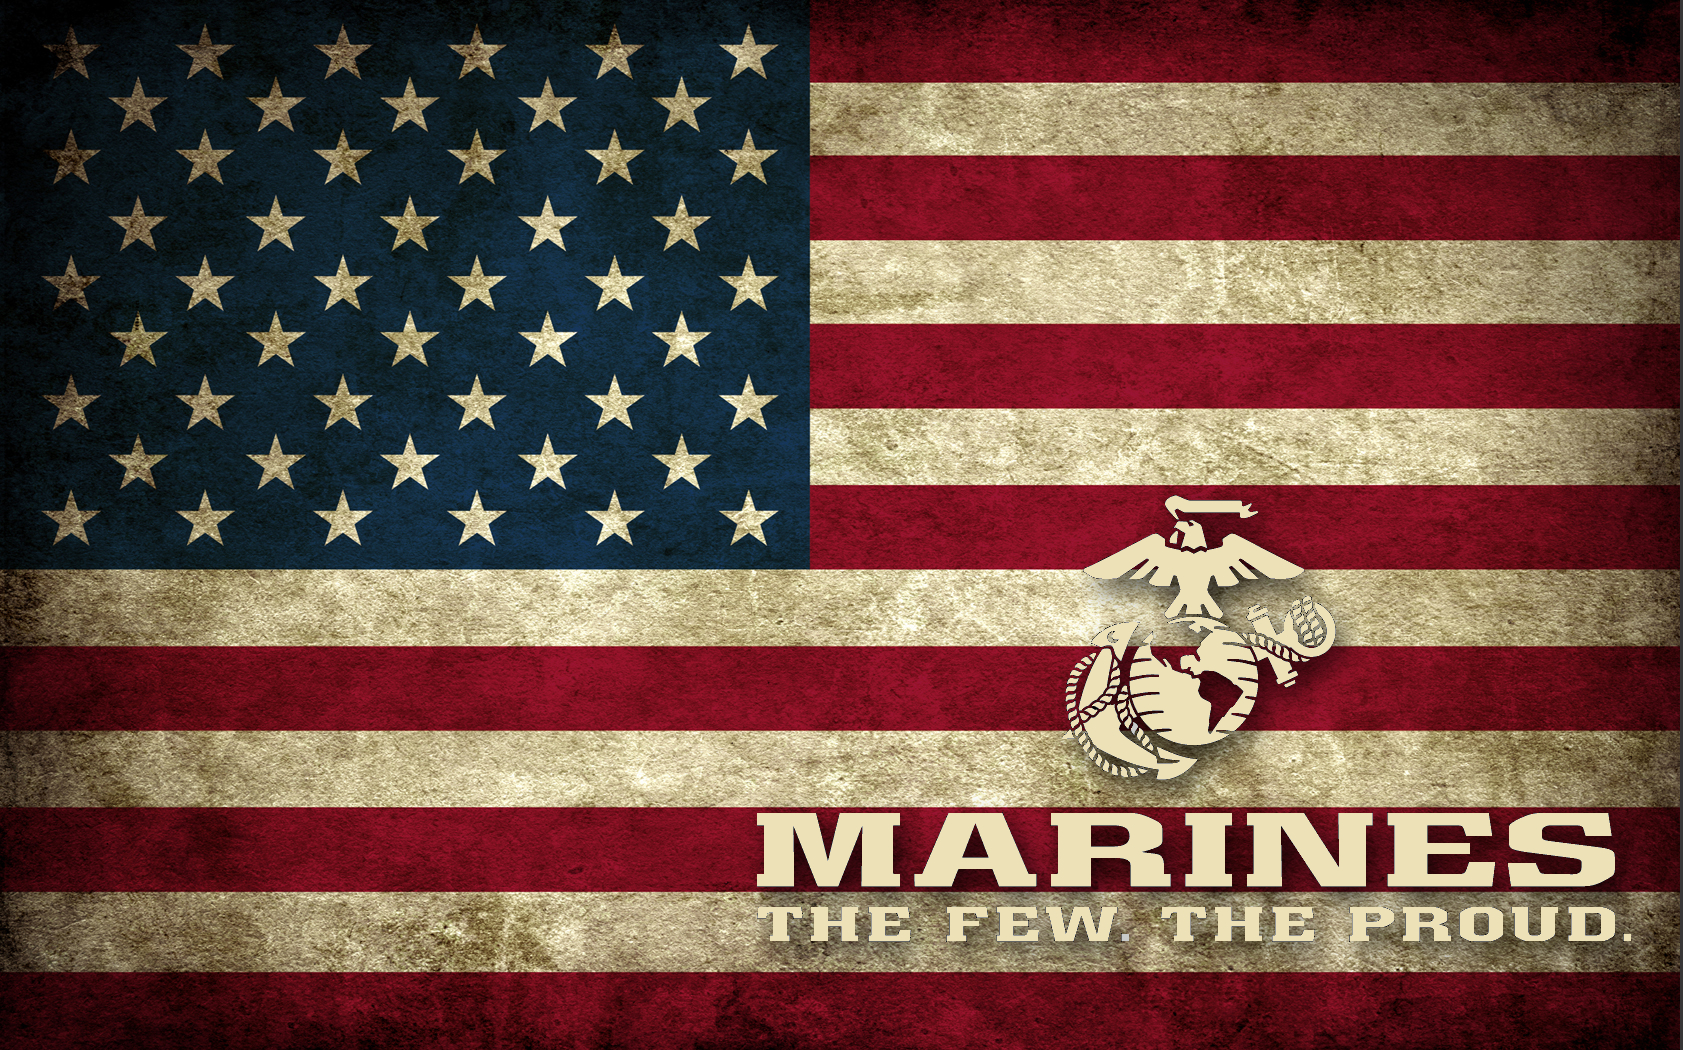 Marine Corps Desktop Wallpaper loopelecom 1683x1050